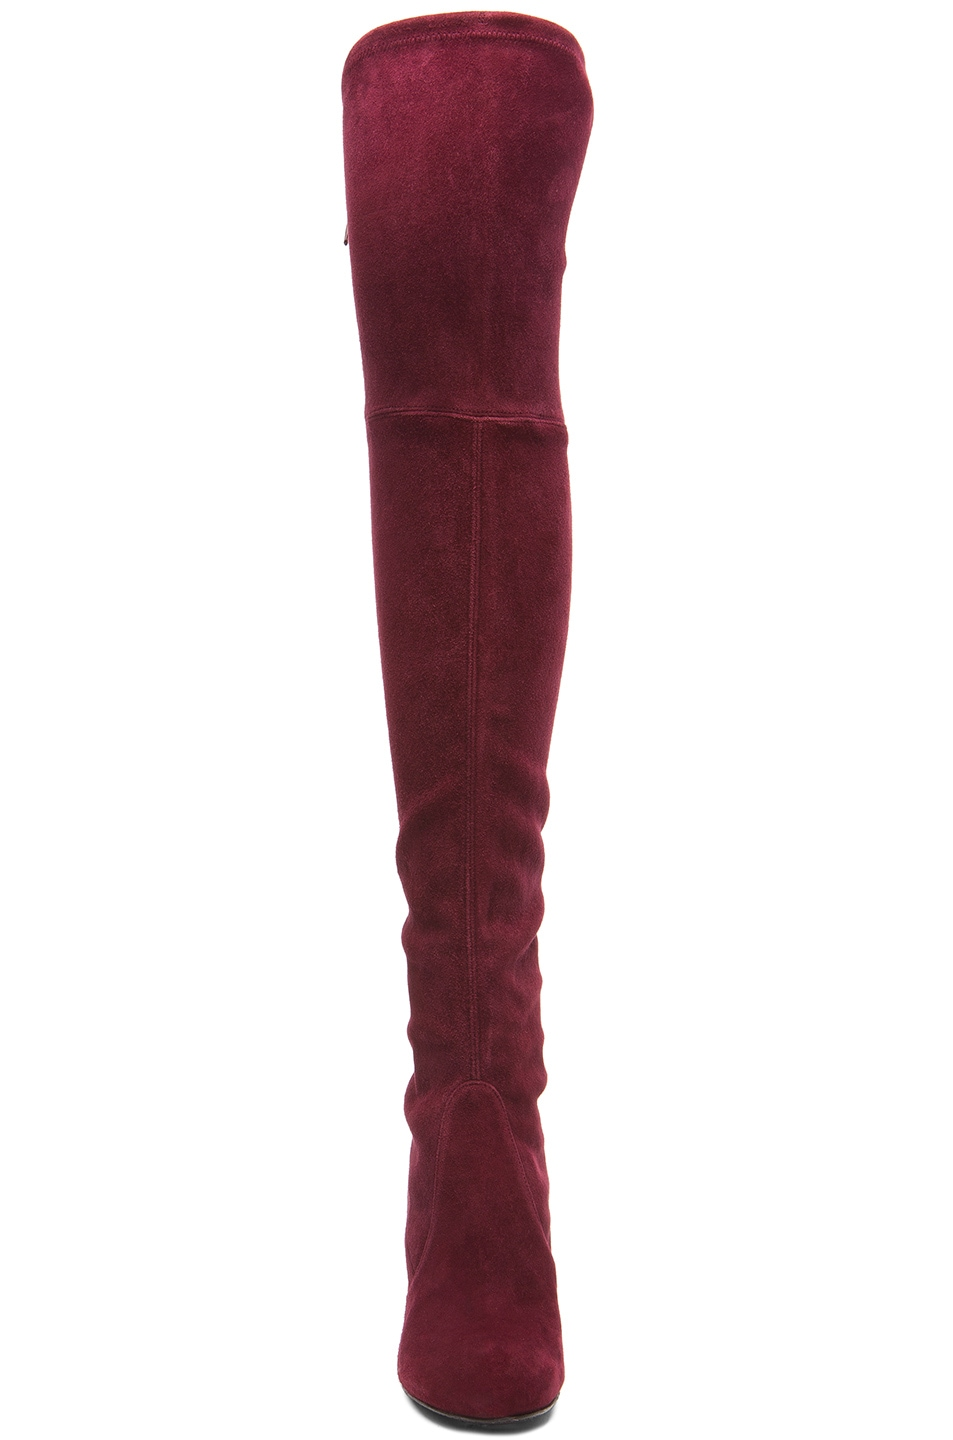 Image 4 of Stuart Weitzman Highland Suede Boots in Bordeaux Suede